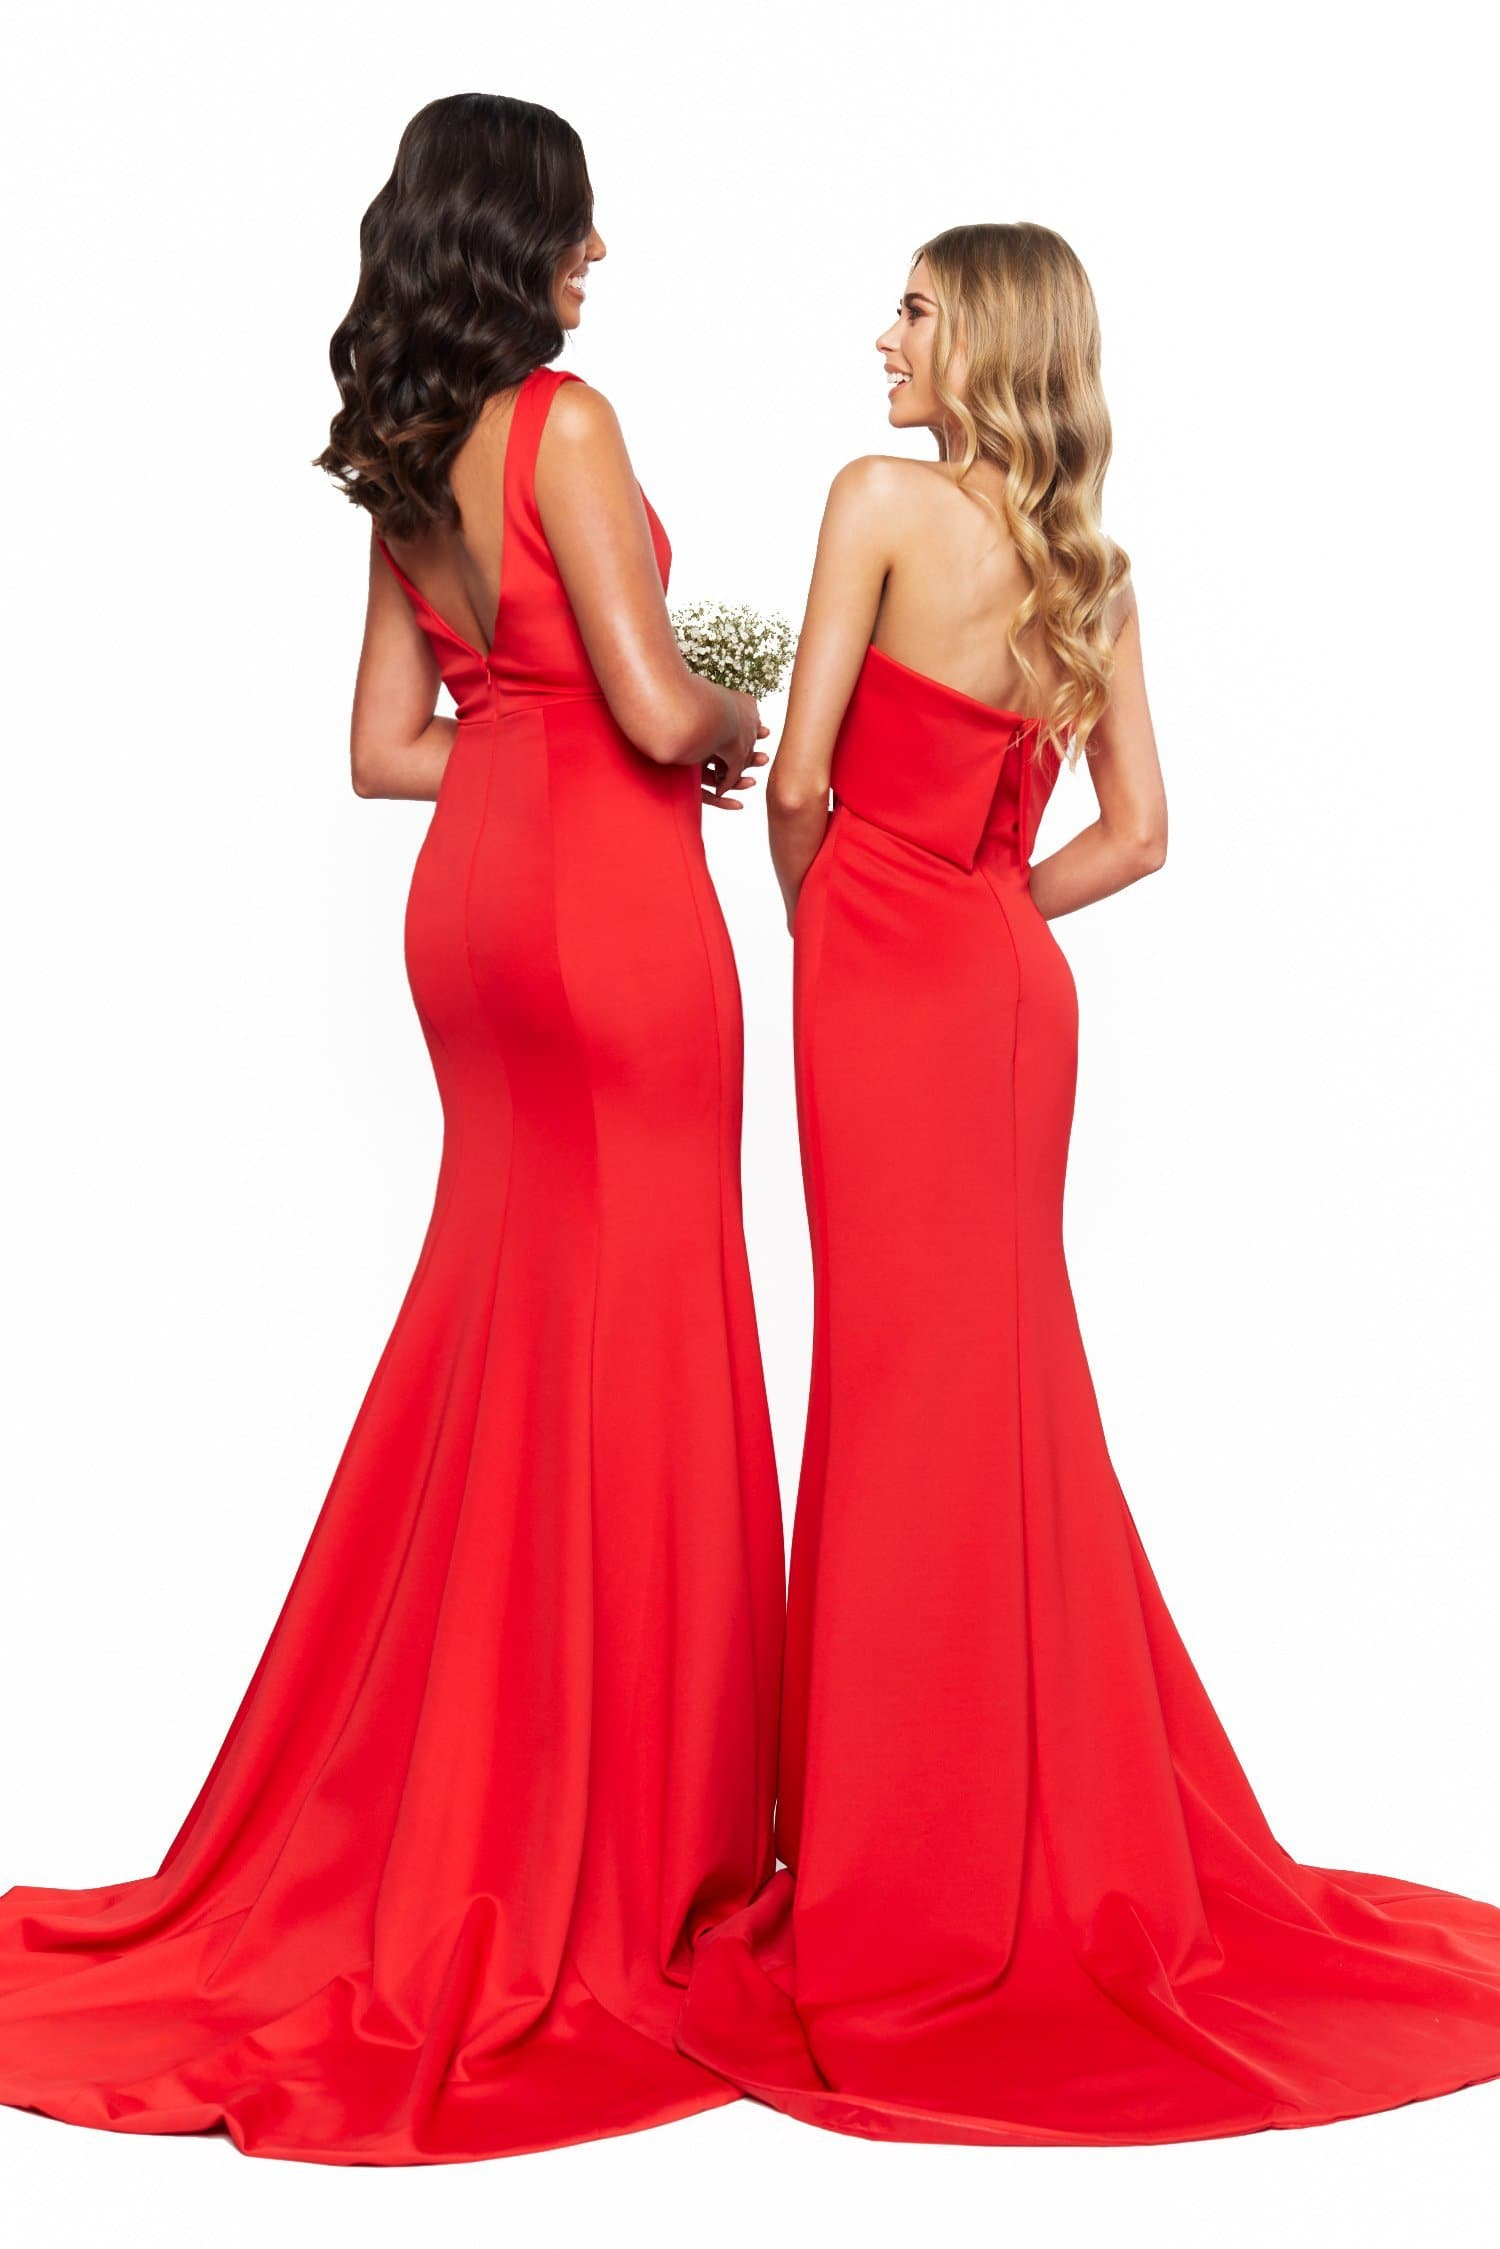 A&N Bridesmaids Lola Strapless Mermaid Gown With Train - Red